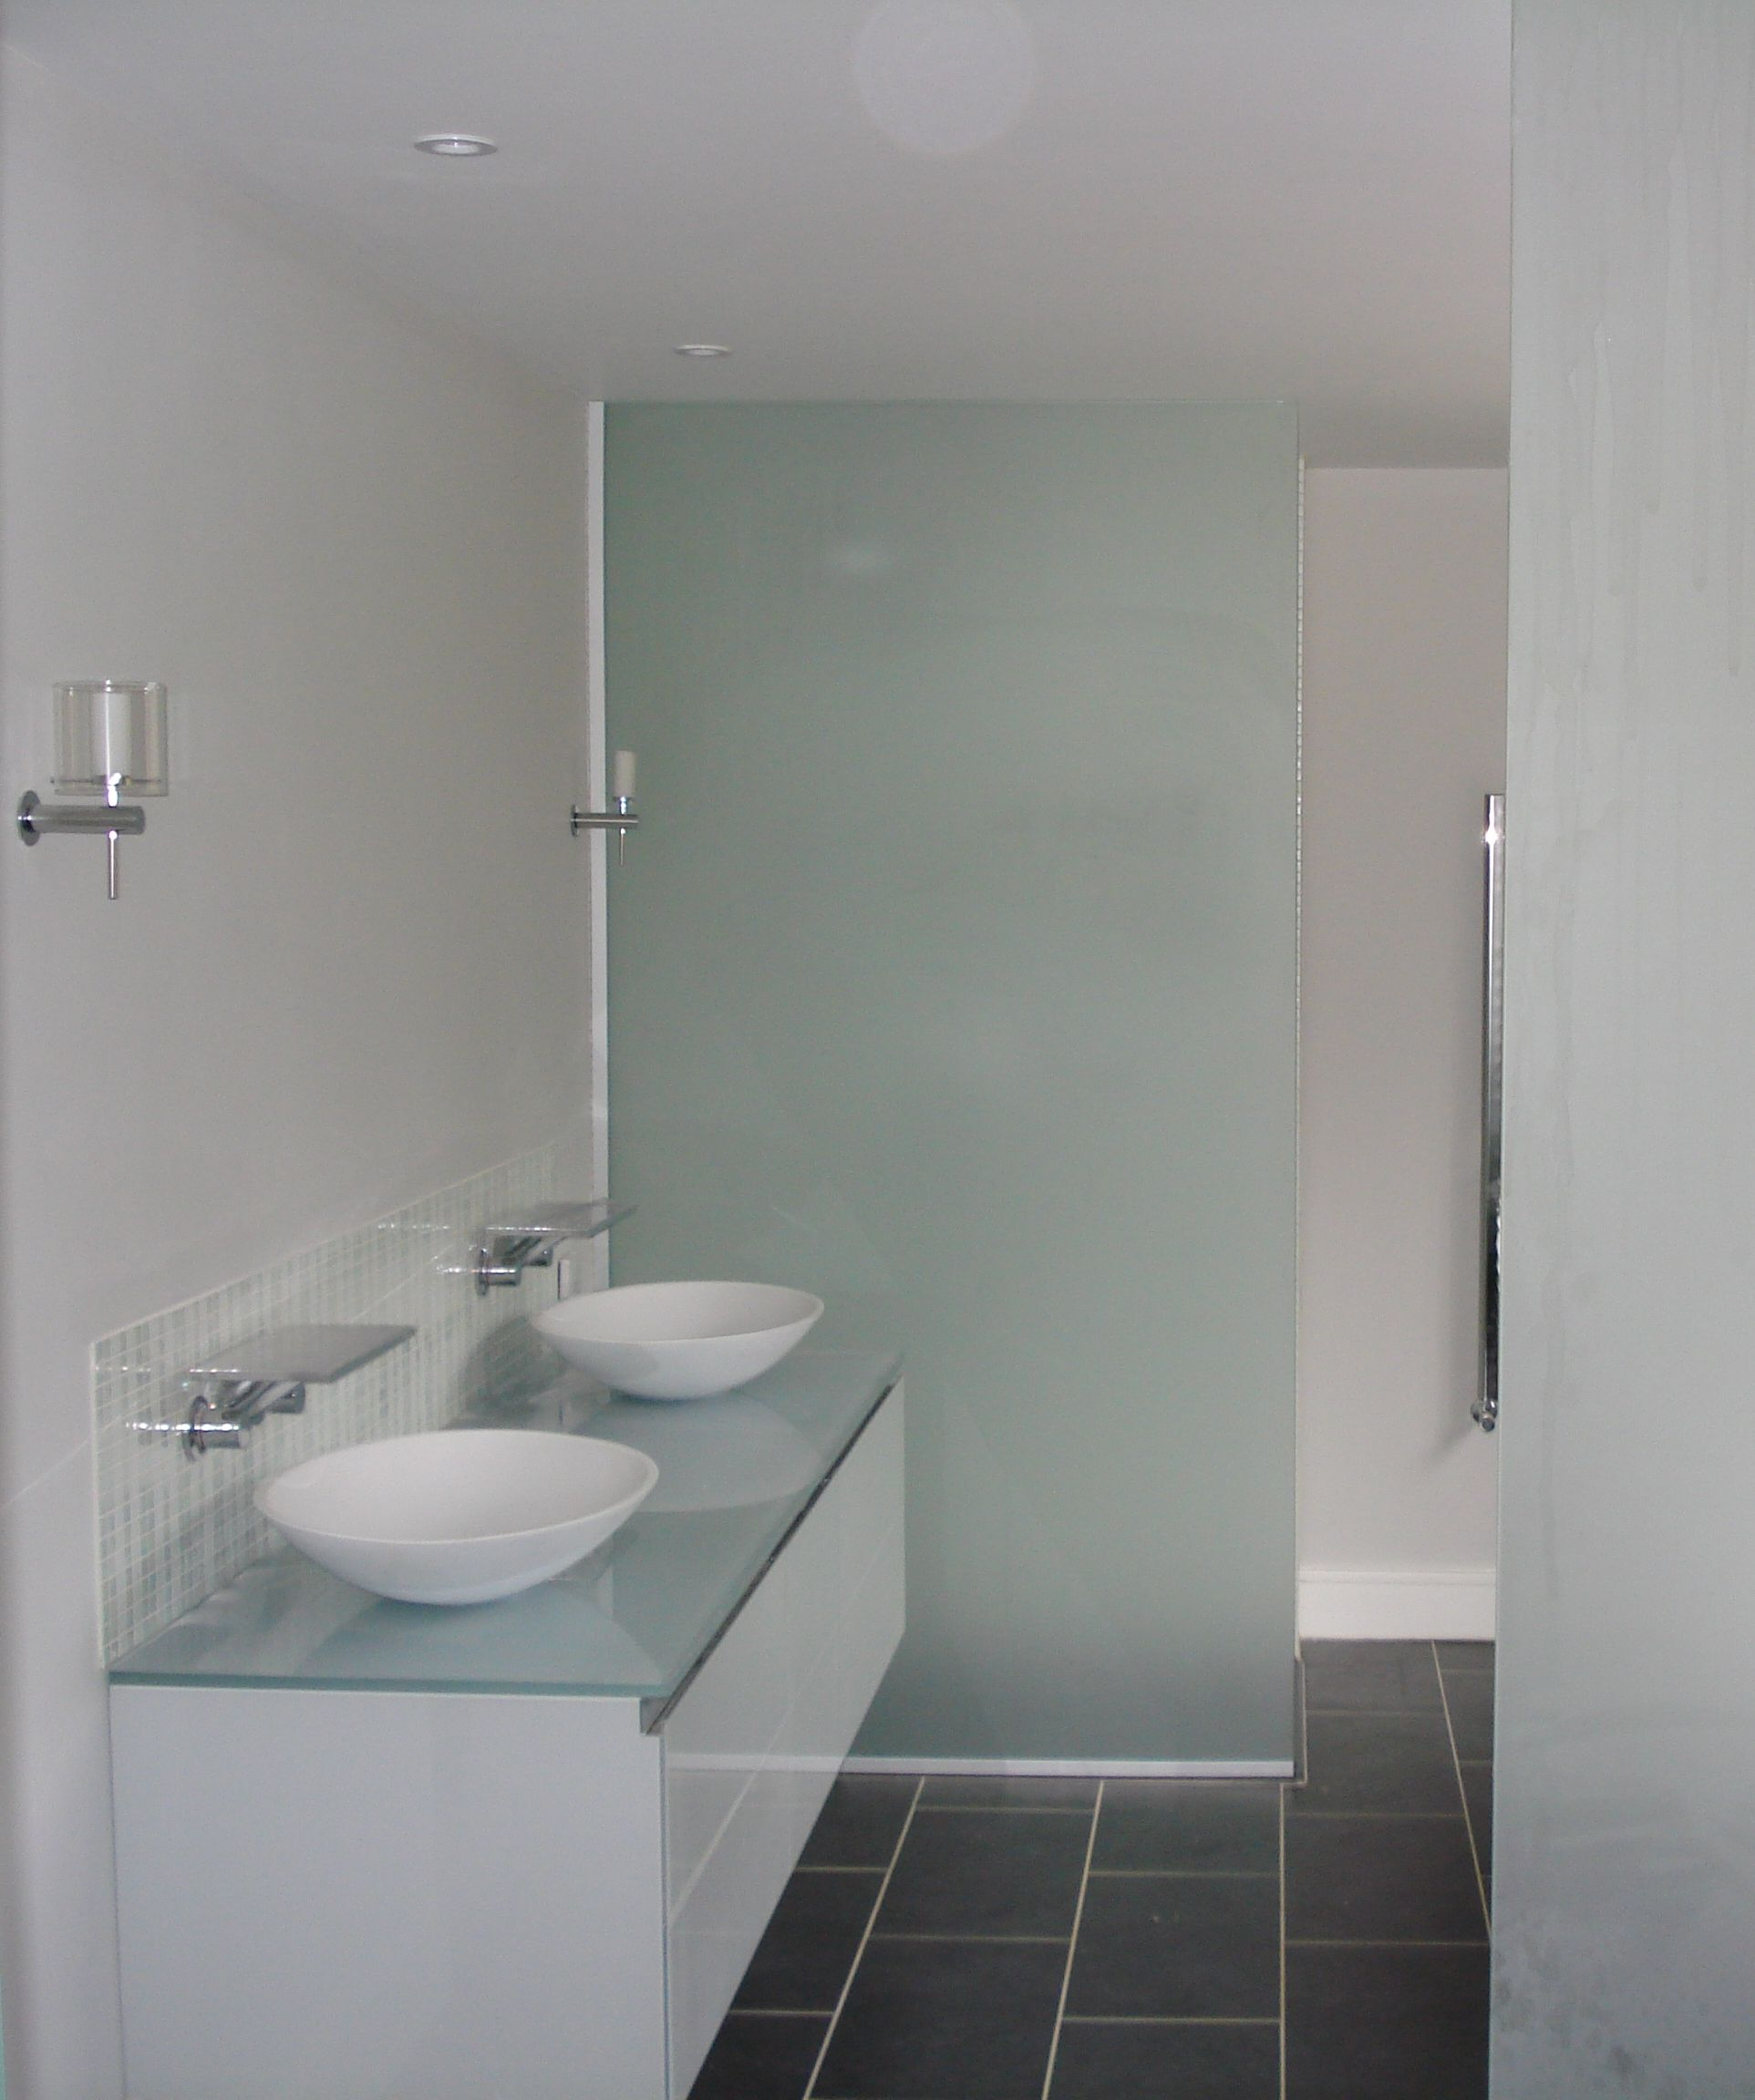 Beautiful Etched Glass Shower Doors By Vitrealspecchi Etched Glass Shower Doors Glass Shower Shower Doors